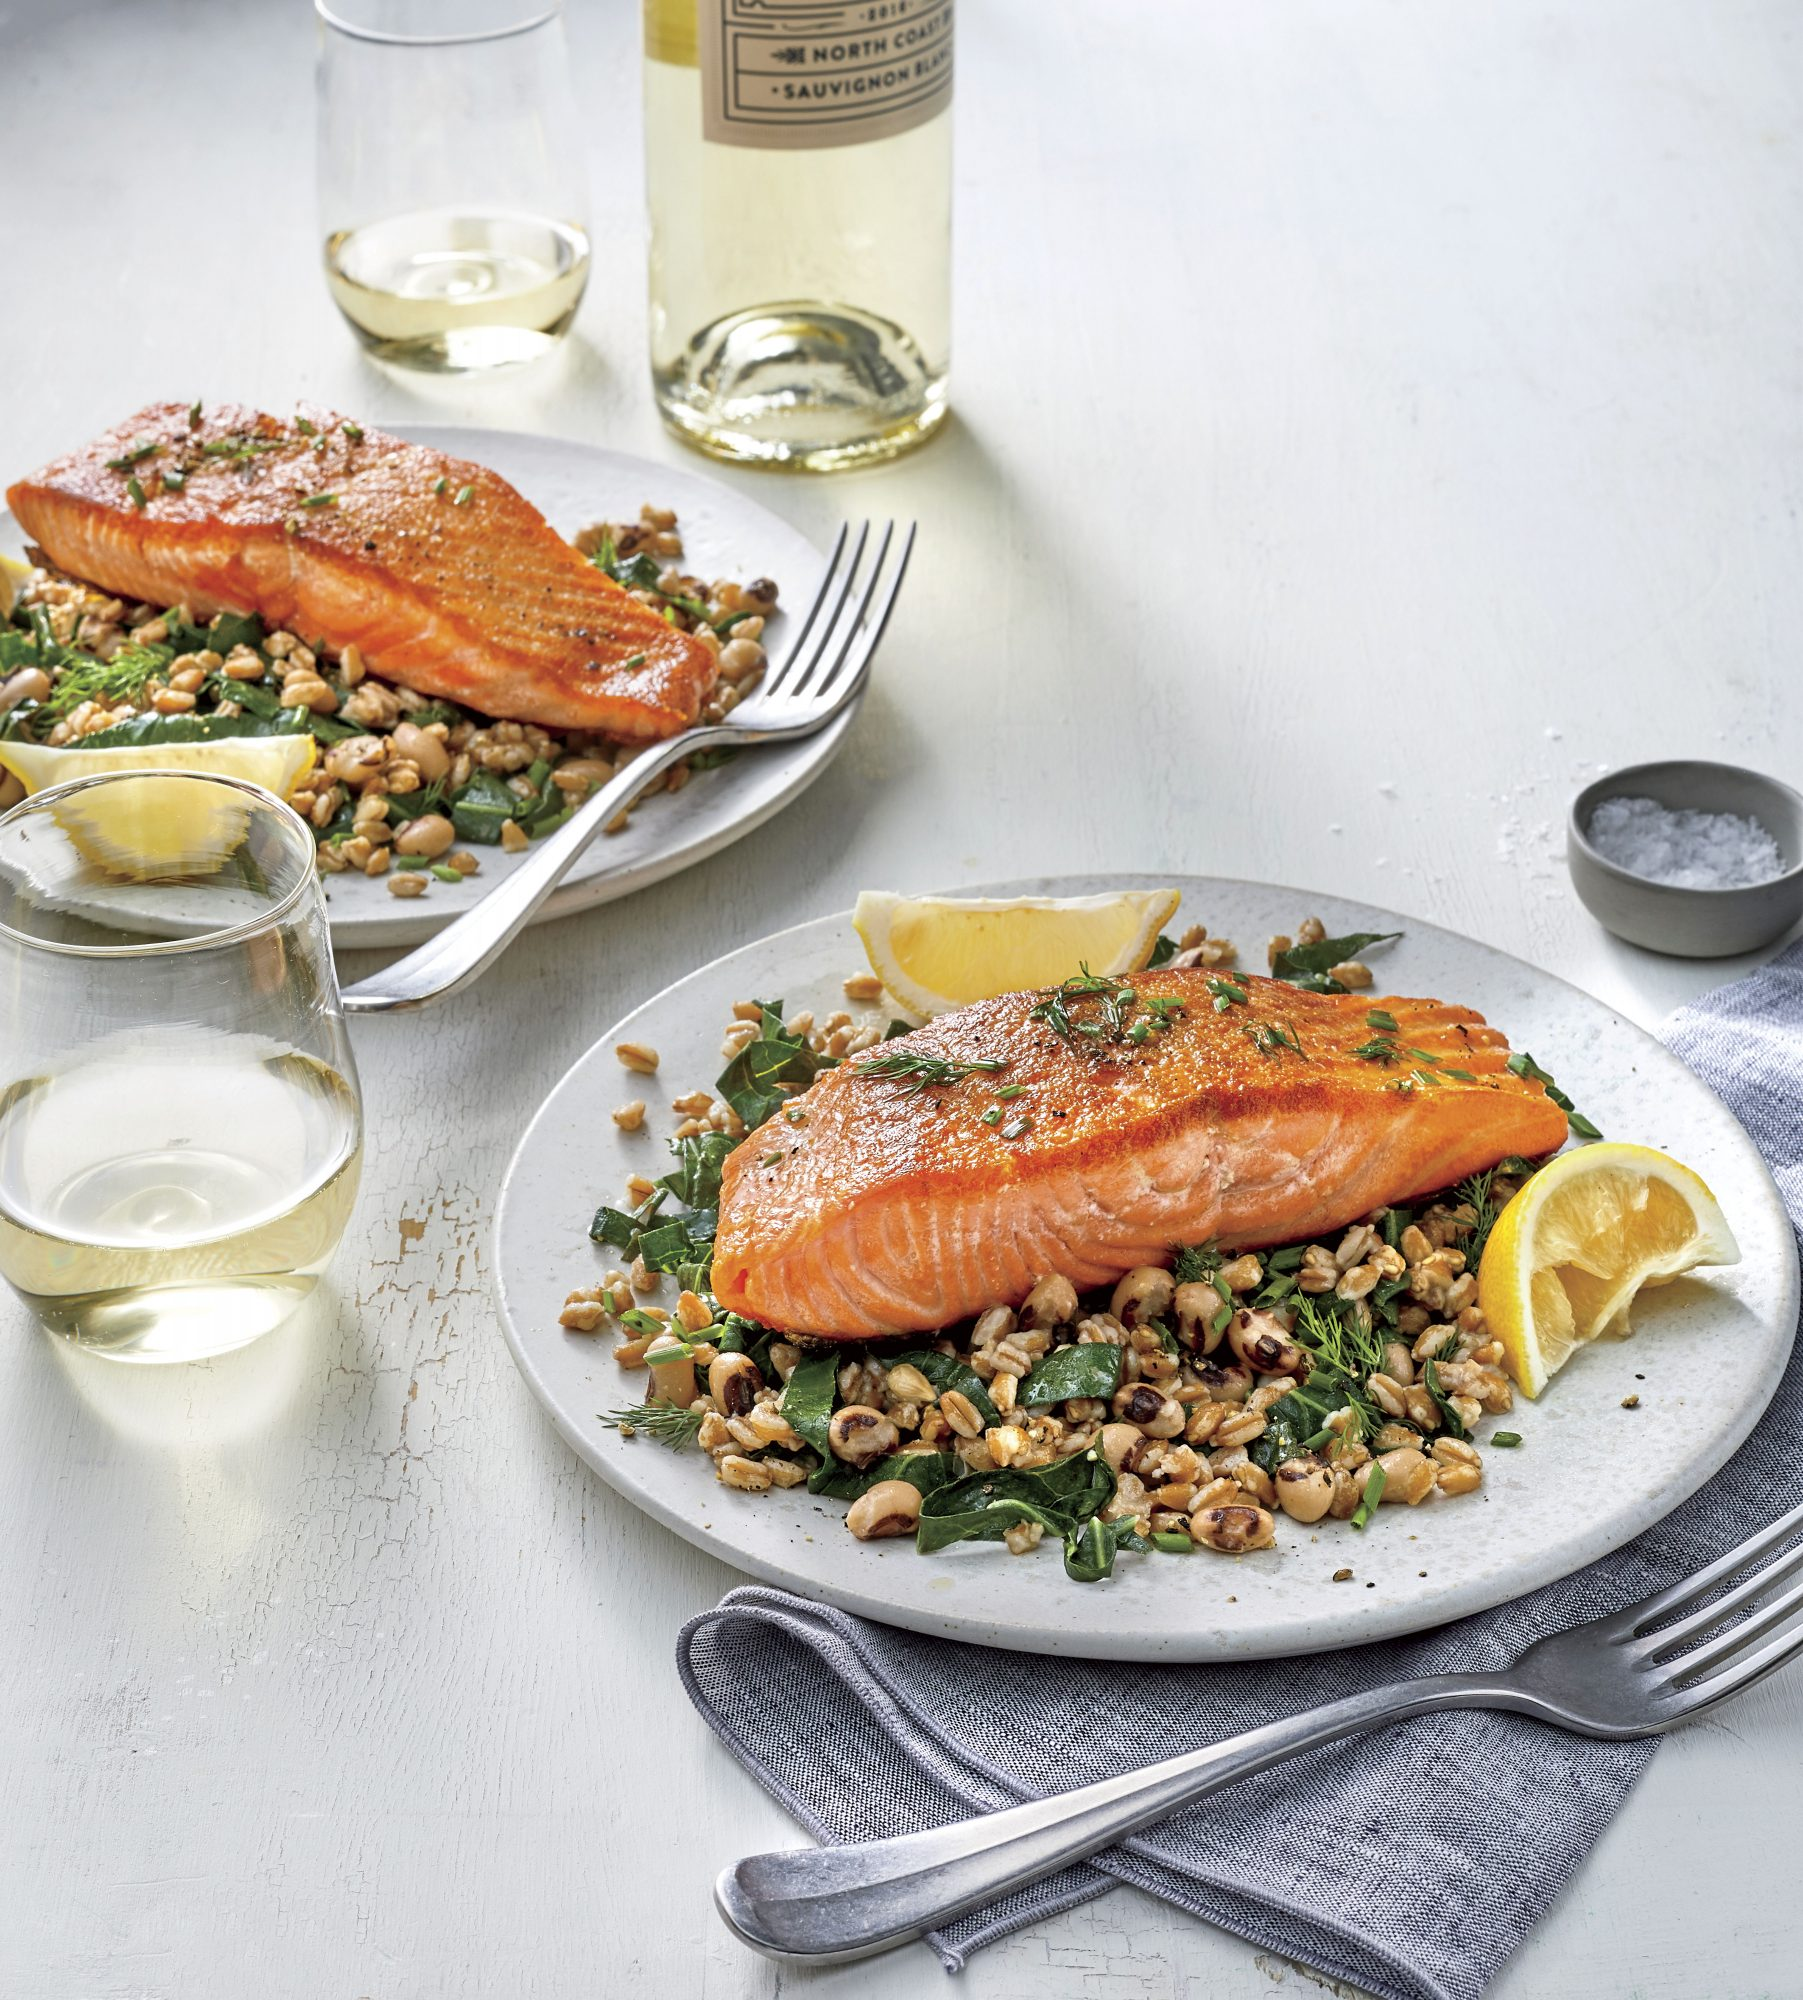 Pan-Seared Salmon with Lemony Greens and Grains